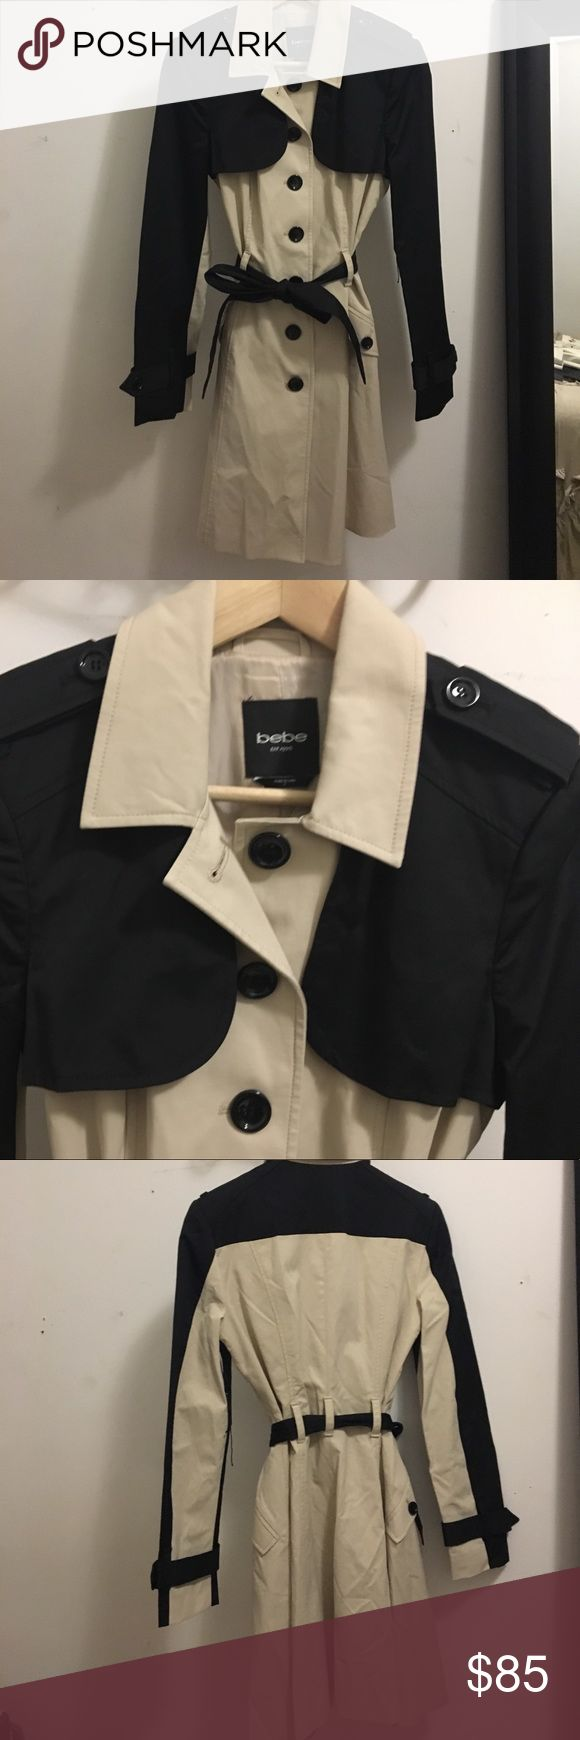 Brand new two-toned Bebe belted trench coat. Super cute, tan and black trench coat with belt. bebe Jackets & Coats Trench Coats